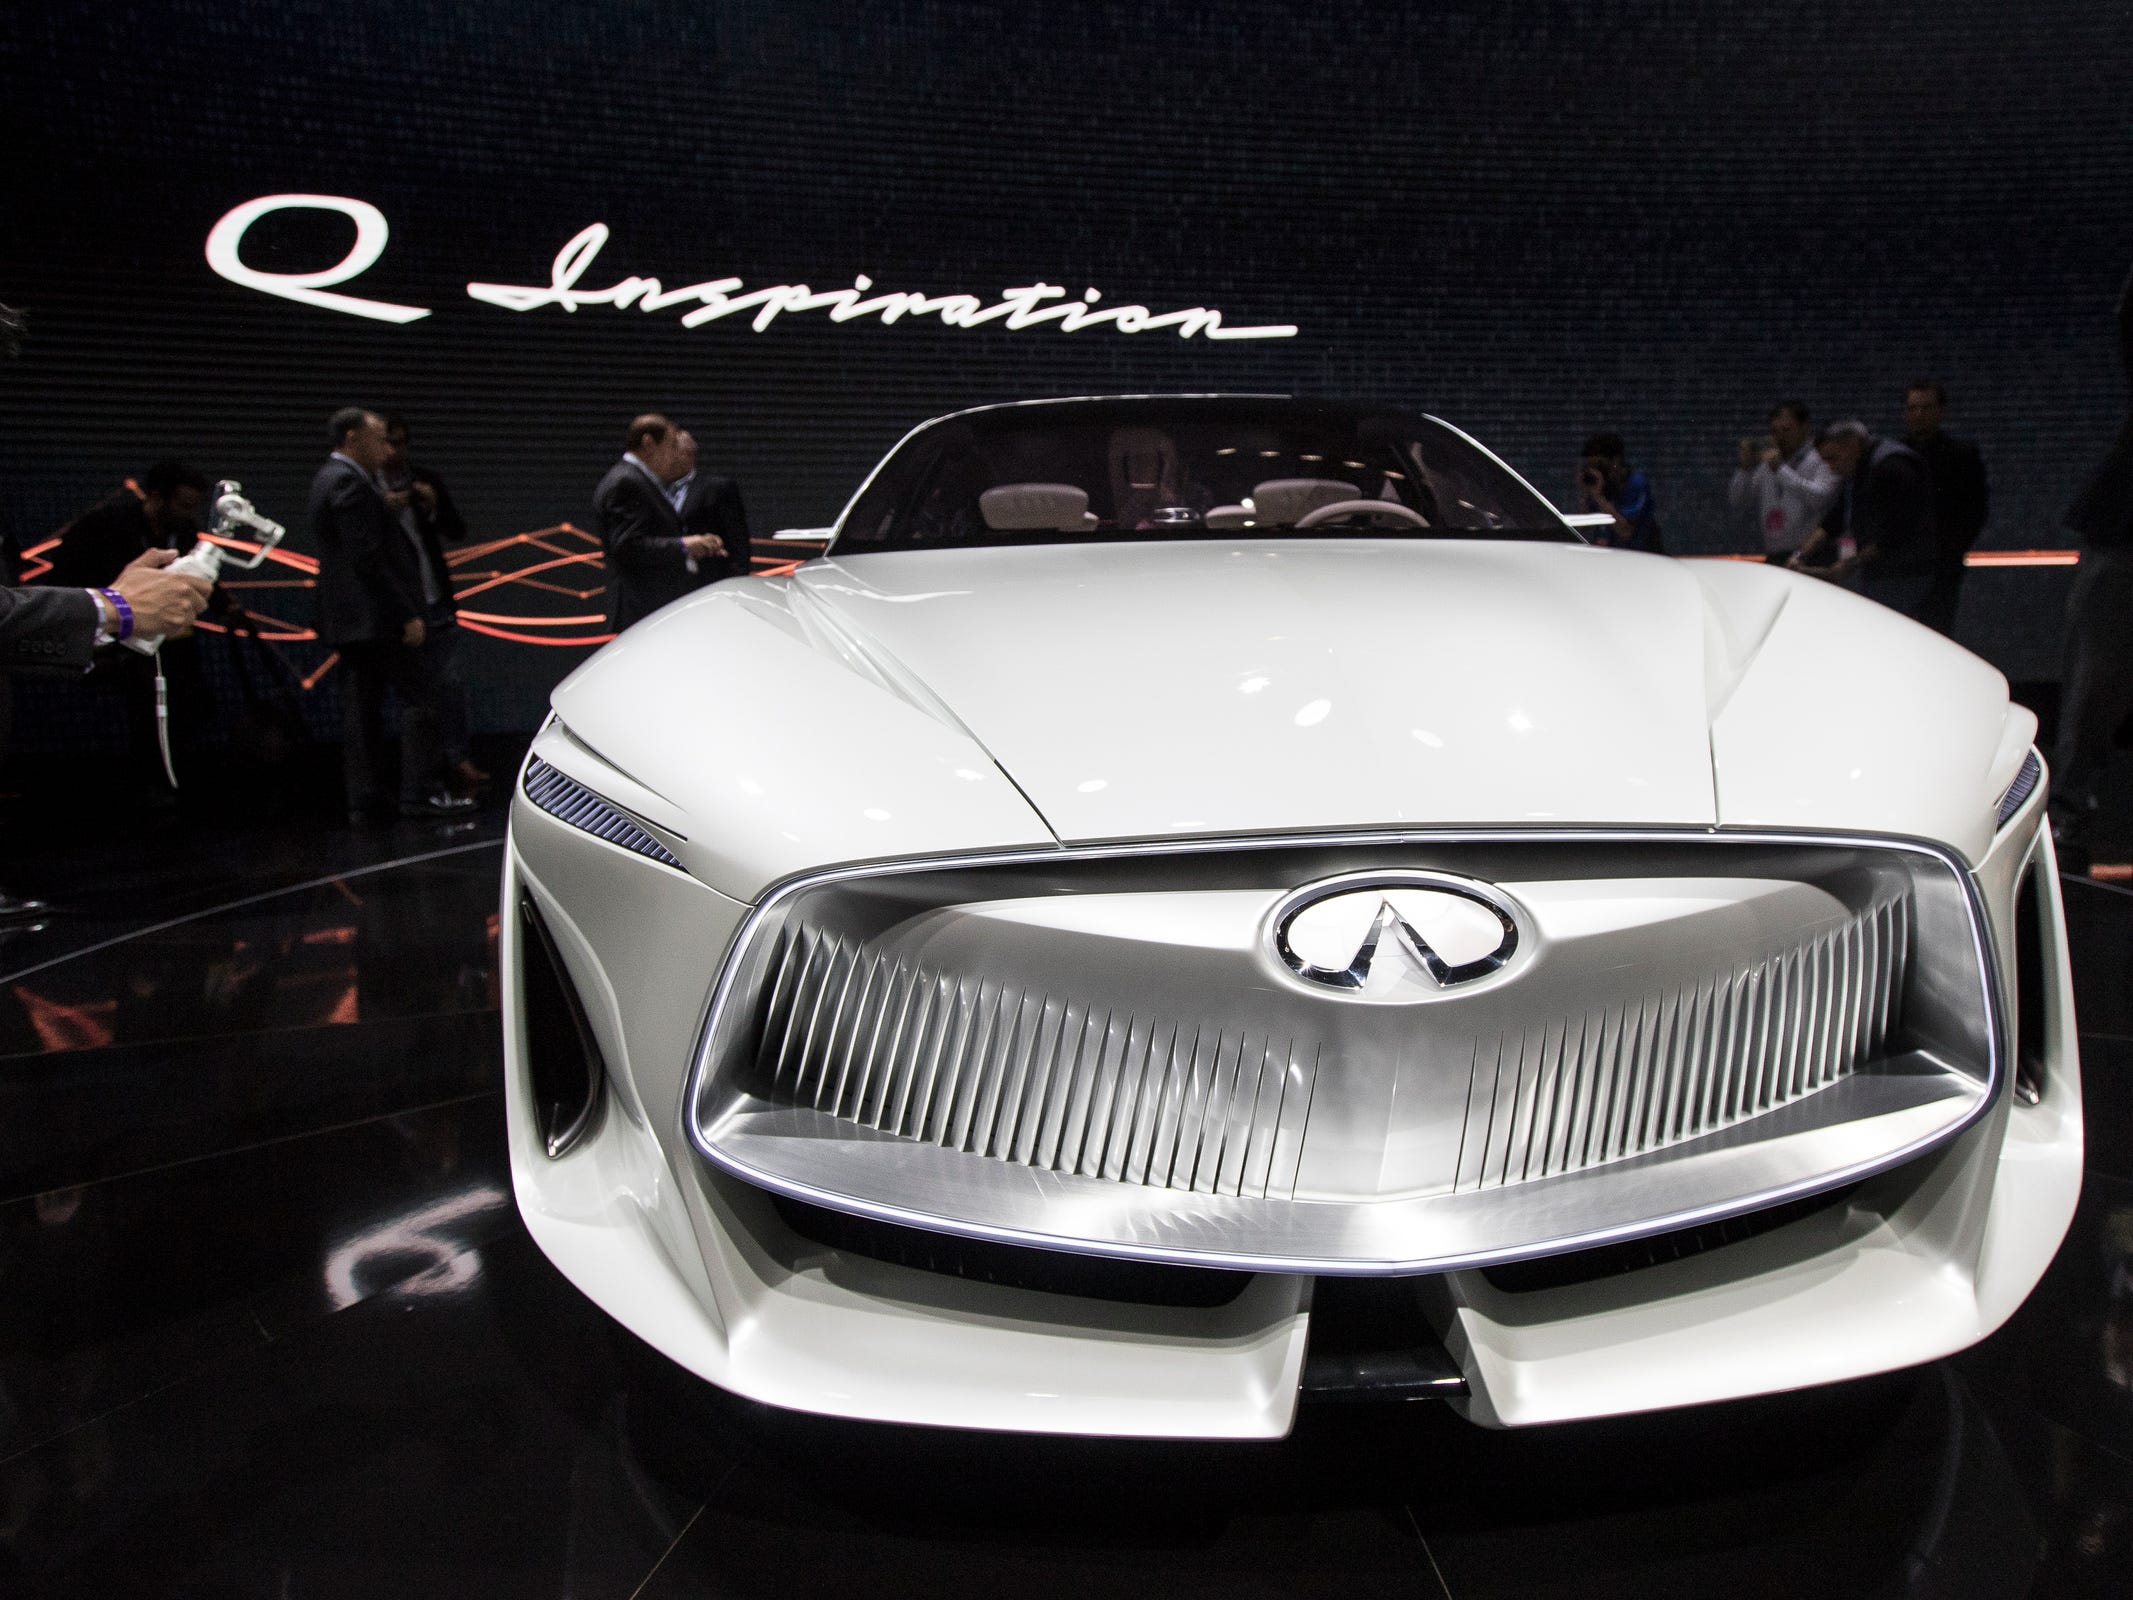 Front grille of the Infiniti Q Inspiration concept during the 2018 North American International Auto Show held at Cobo Center in downtown Detroit on Monday, Jan. 15, 2018.